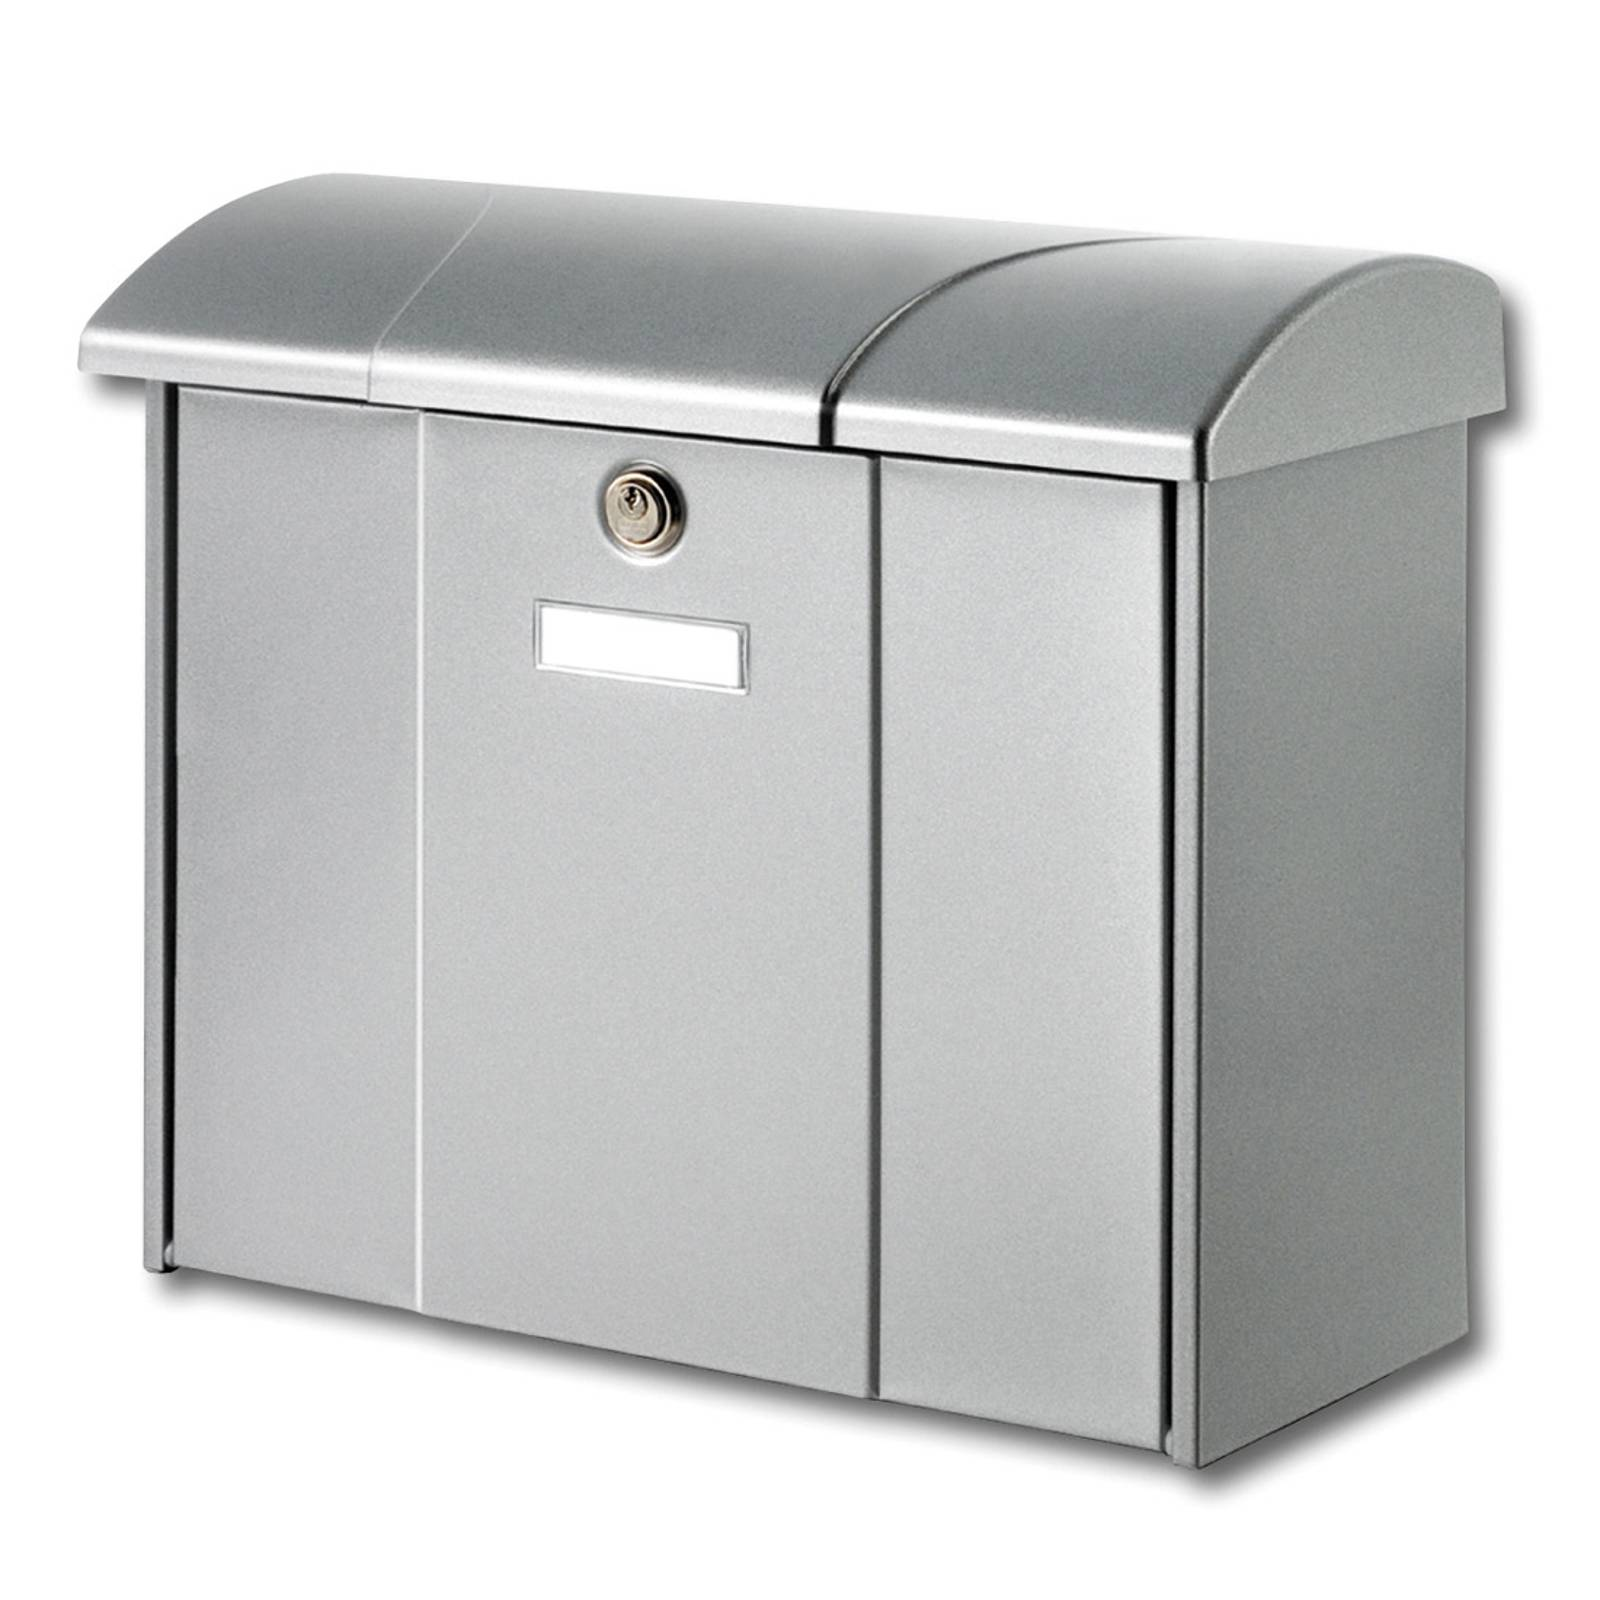 Olymp letterbox in silver